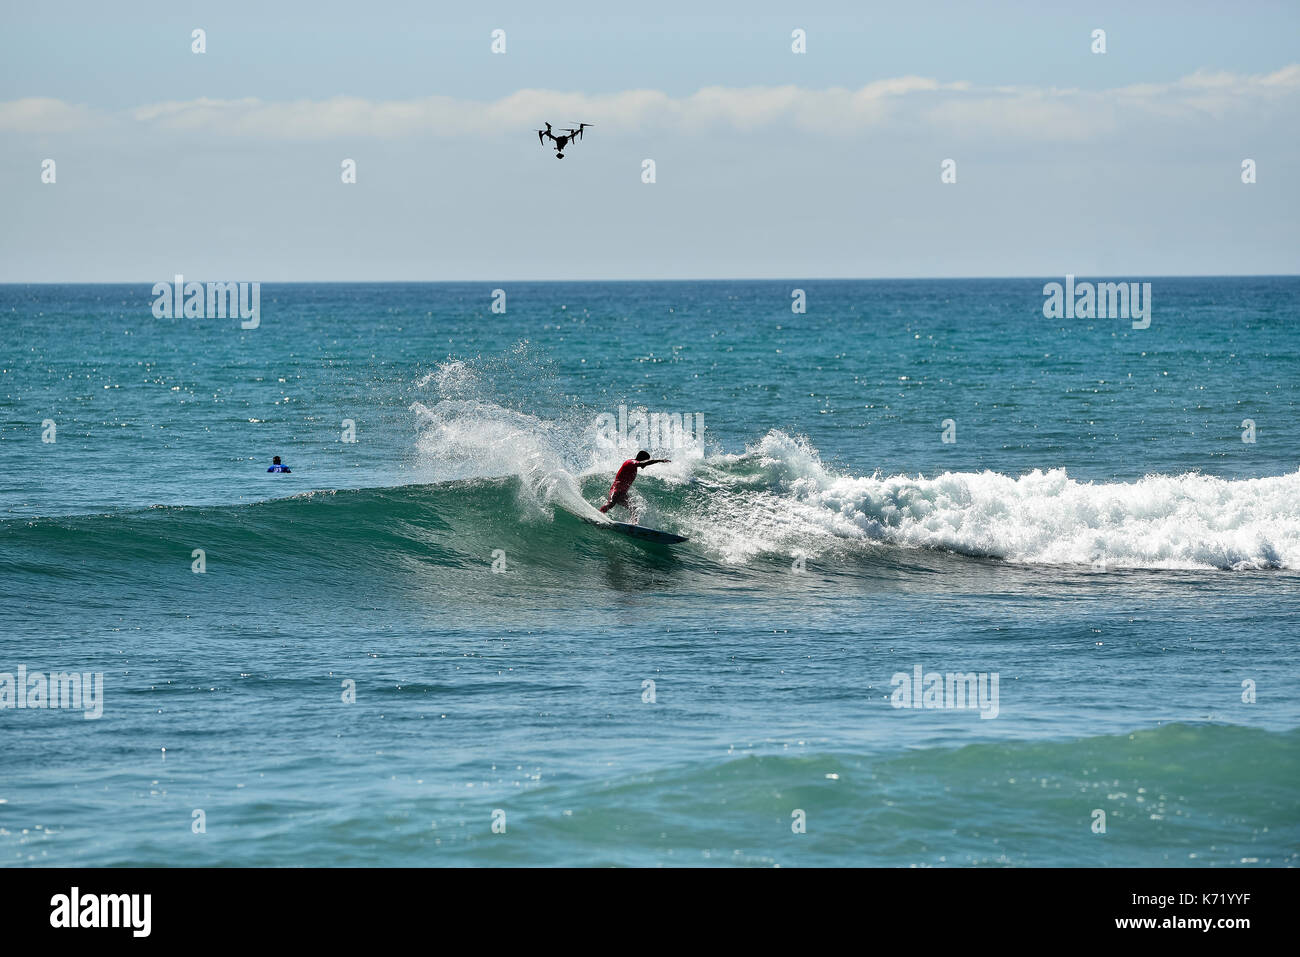 San Clemente, USA. 13 September, 2017.  Surfers compete head to head during the 2017 Hurley Pro surf contest at Lower Trestles, San Onofre State Park, CA. Credit: Benjamin Ginsberg/Alamy Live News. - Stock Image